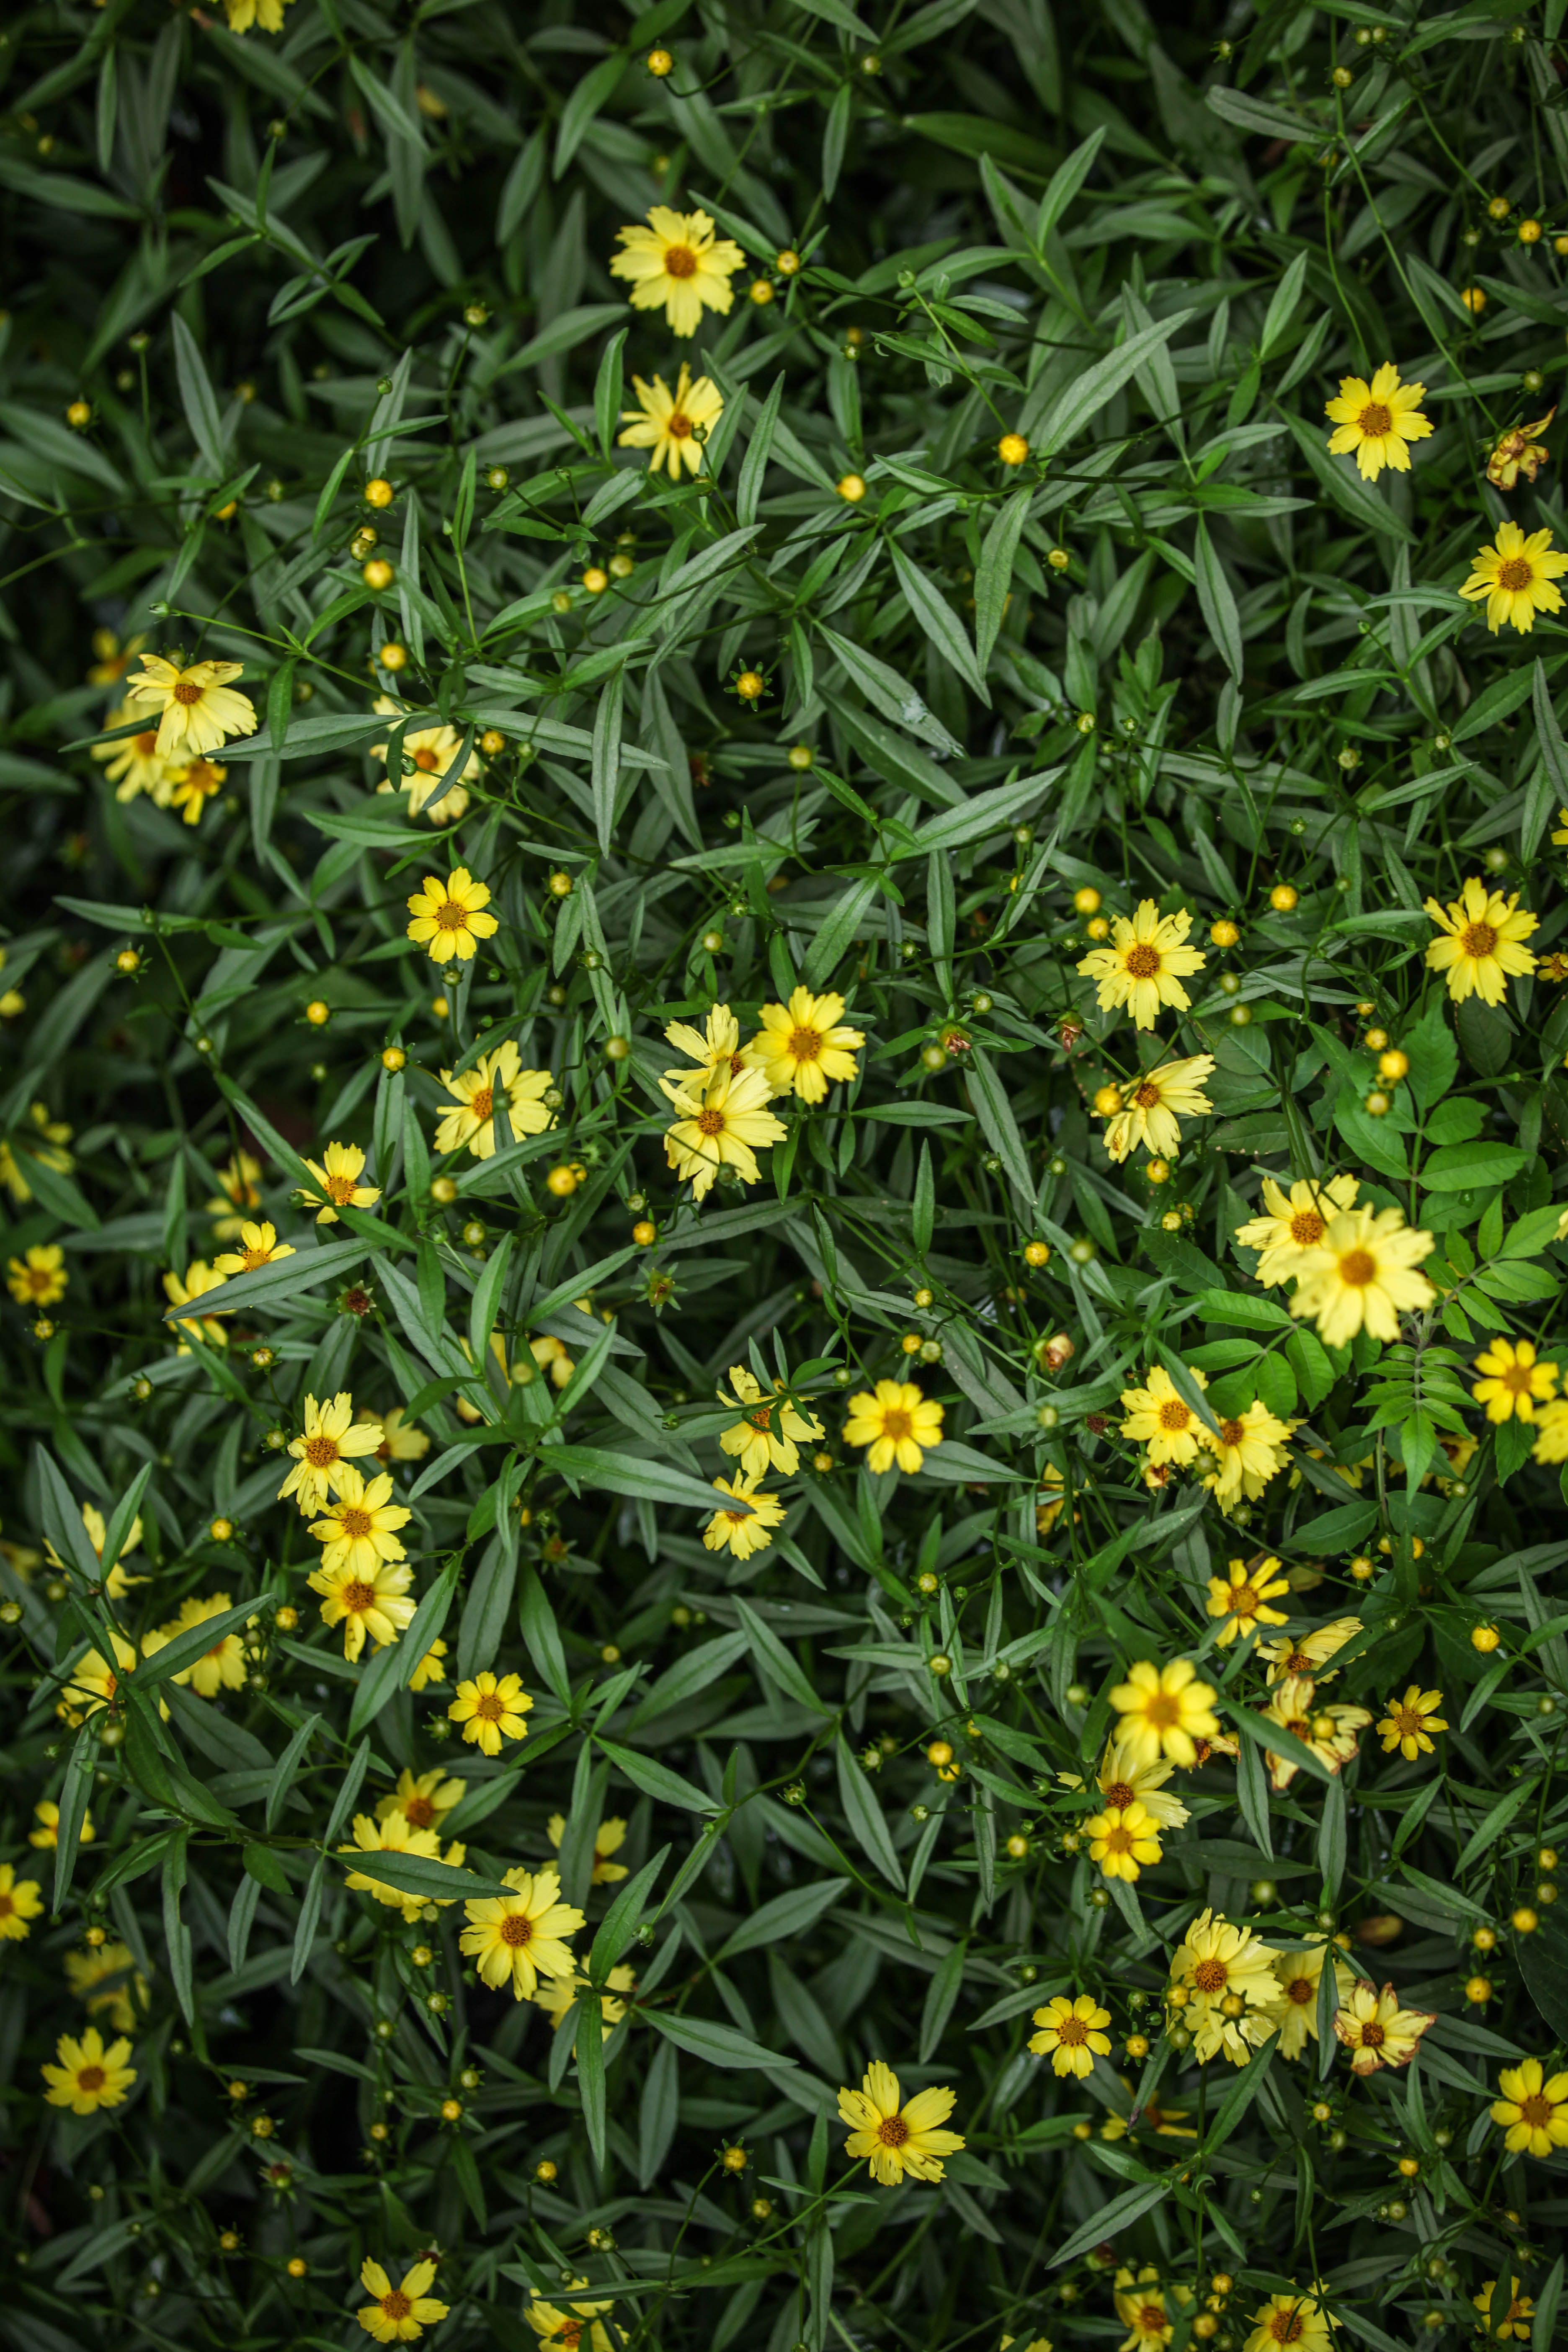 Yellow flower bed